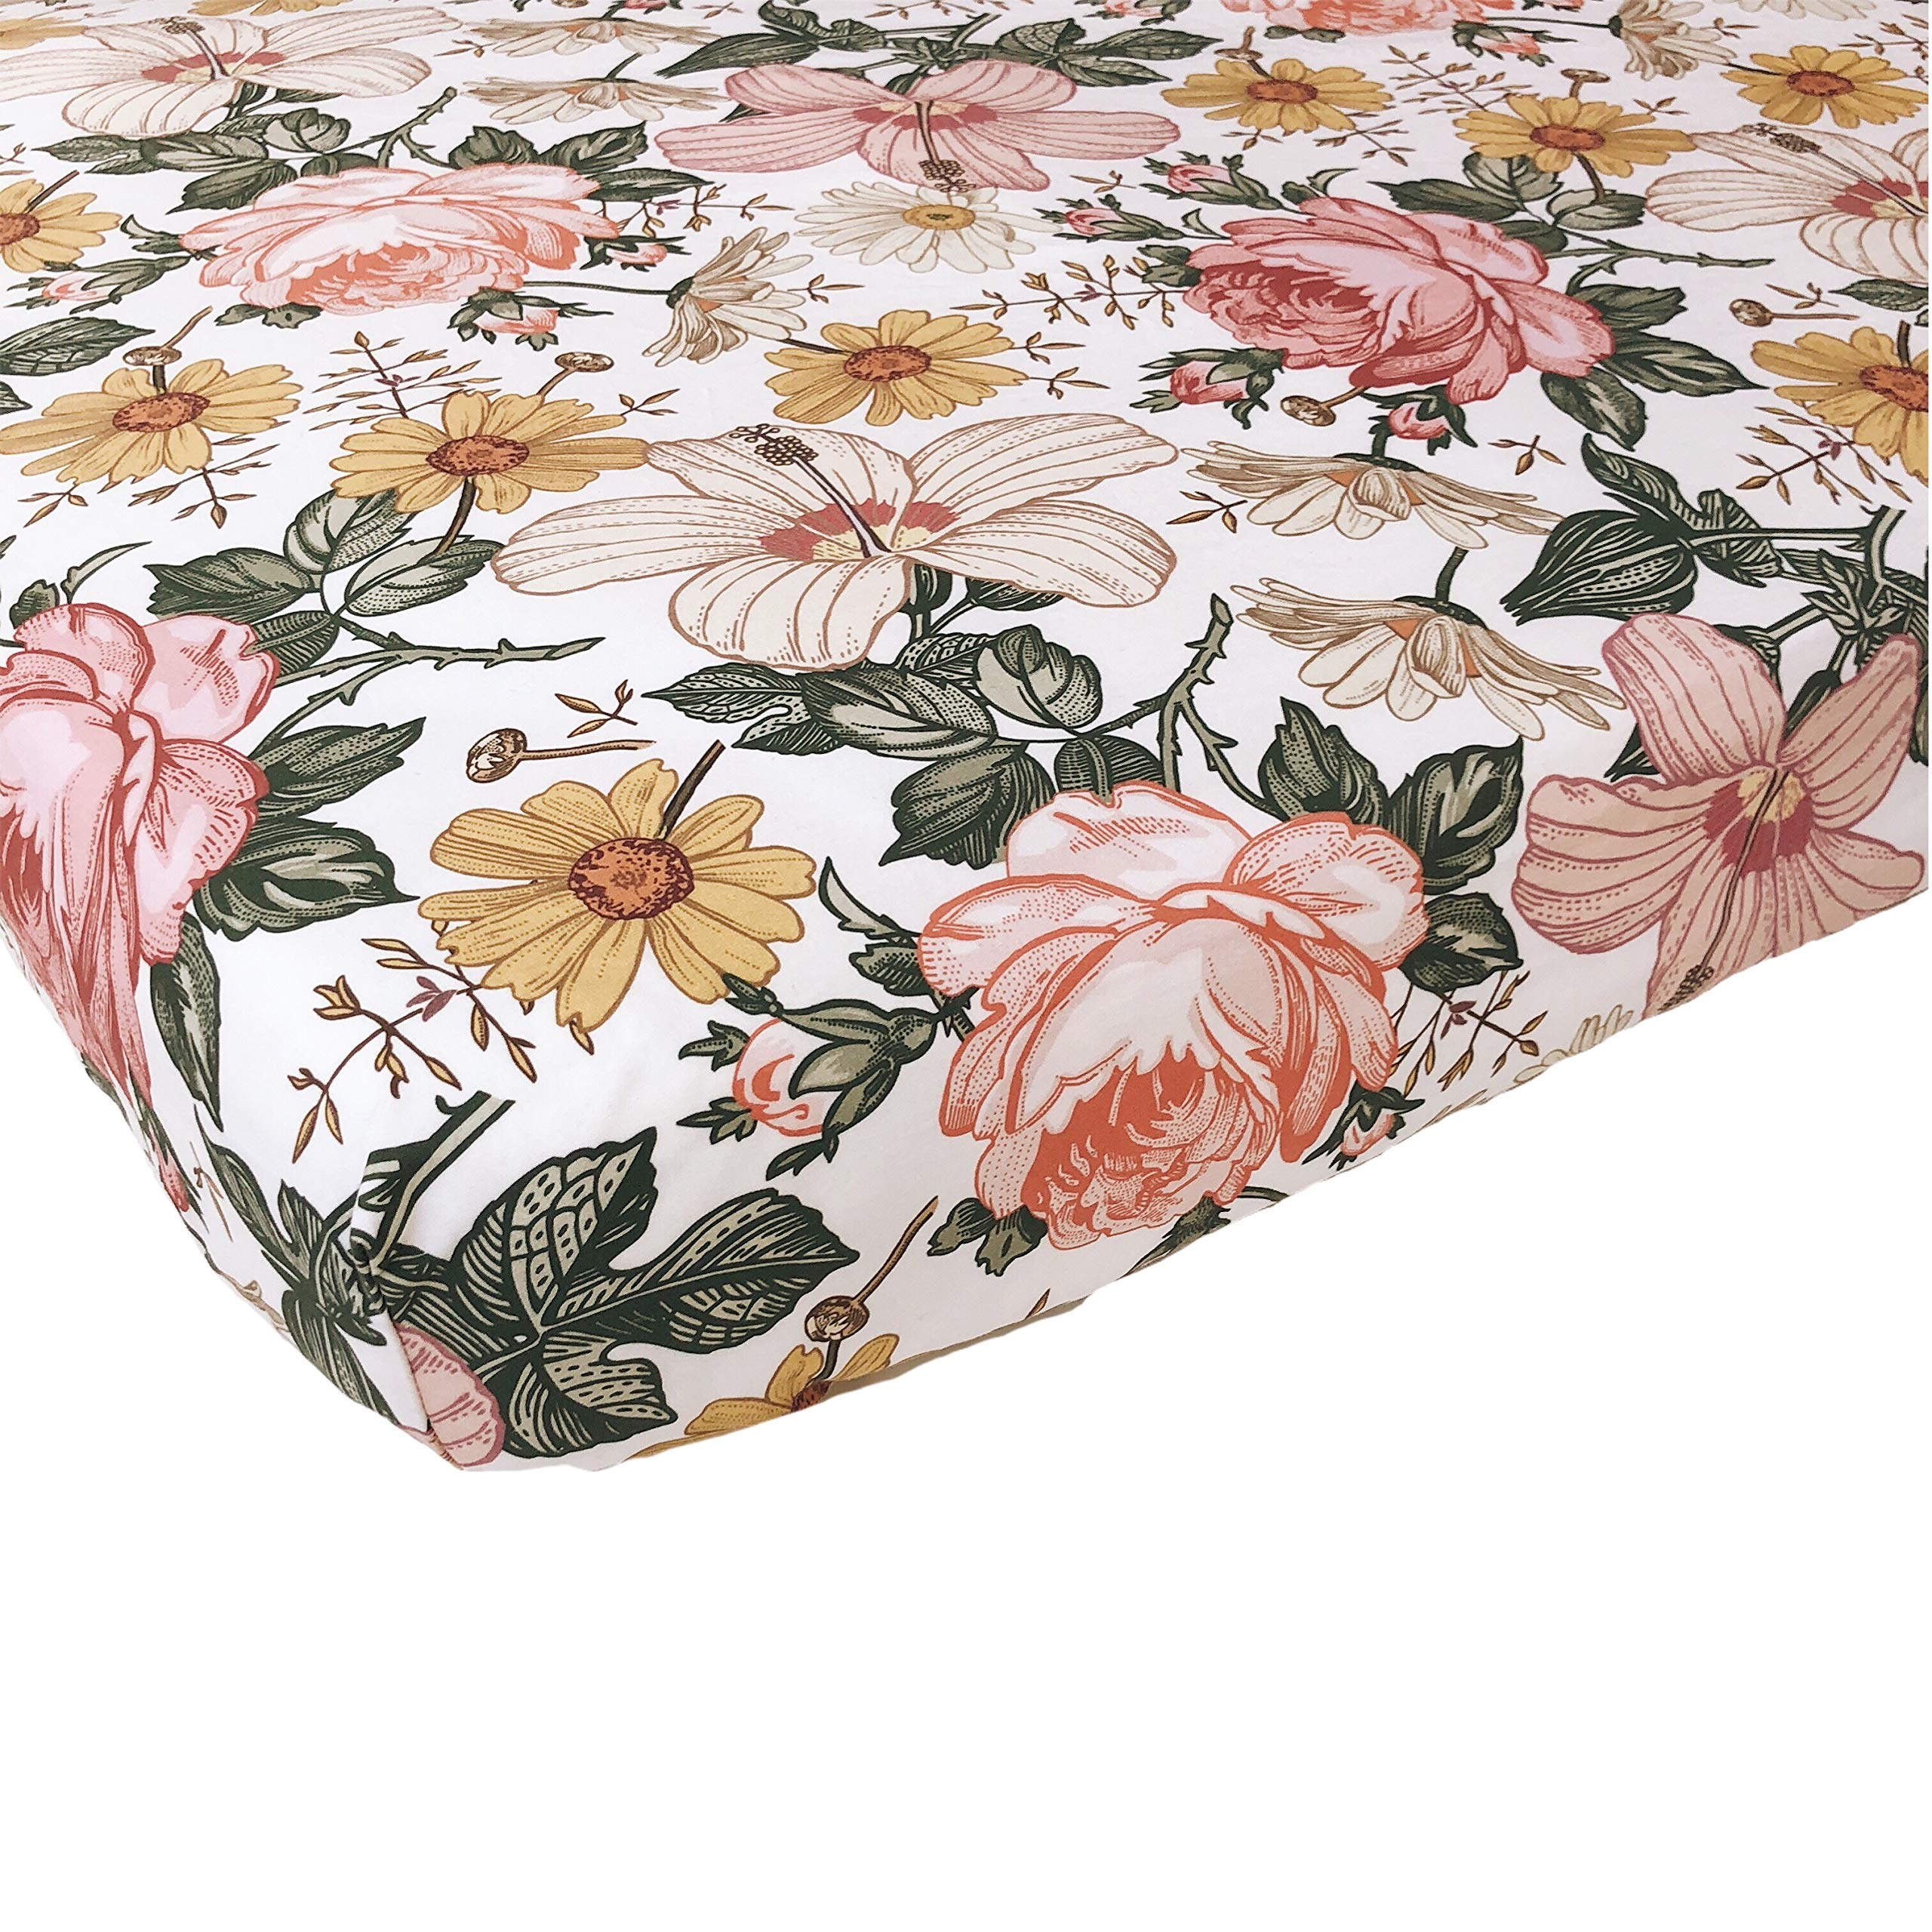 Woven Cotton Crib Sheet - Baby Girl (Garden Floral Crib Sheet) by The Mini Scout